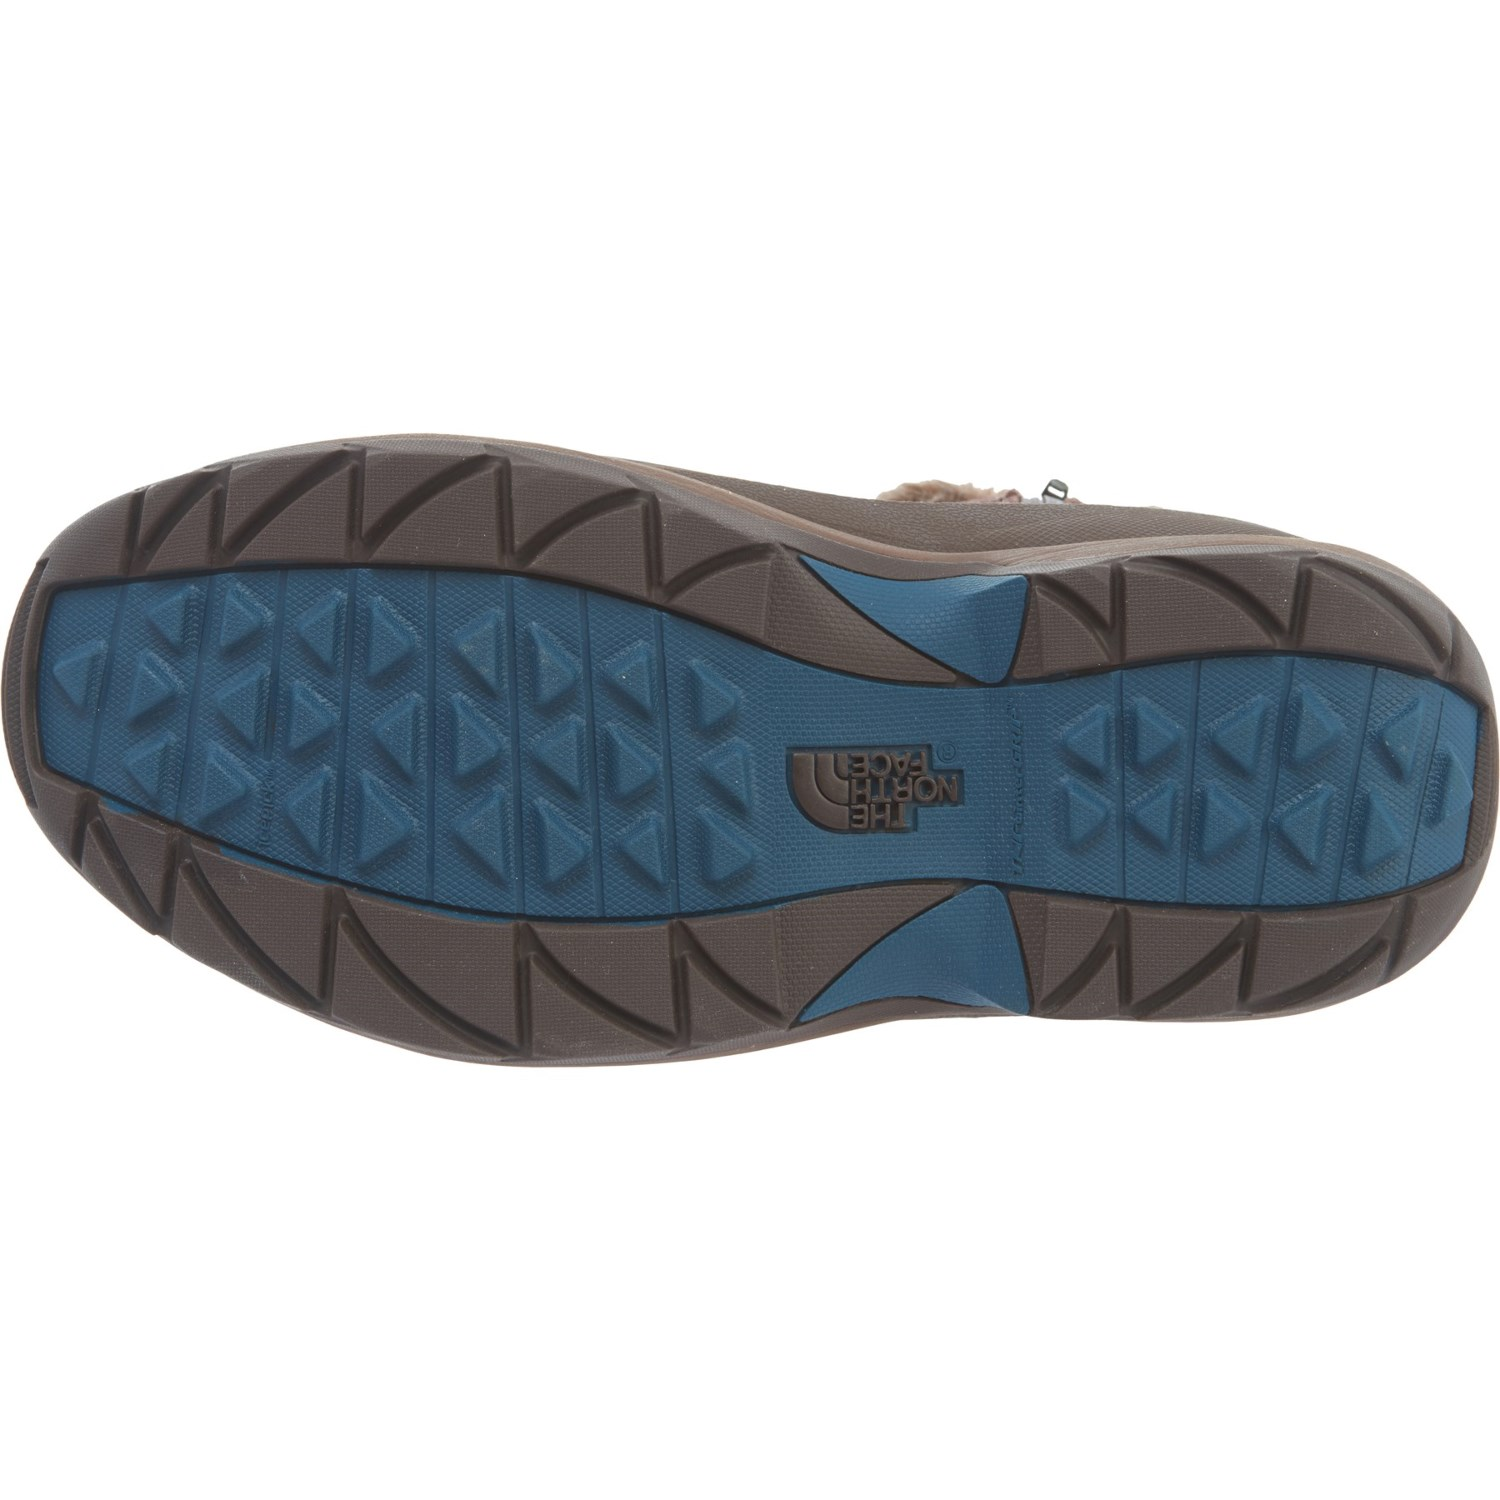 83c371081 The North Face Chilkat III Pull-On Boots (For Women)